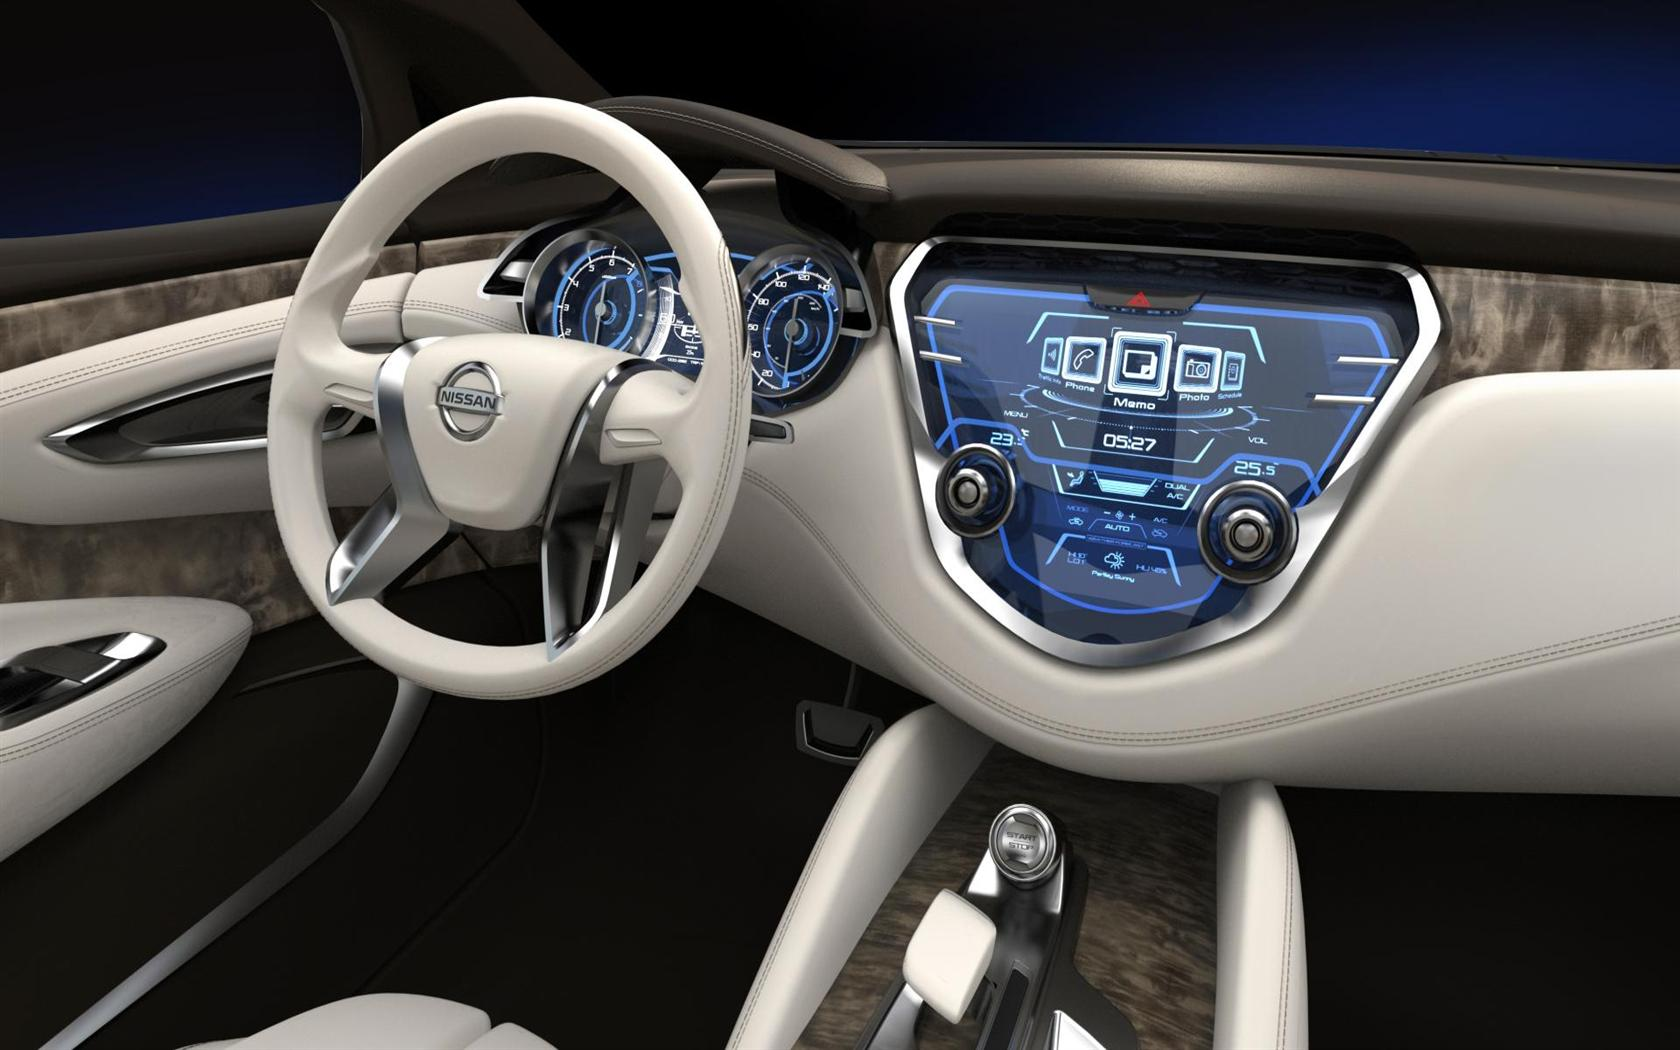 2014 nissan altima coupe redesign image collections hd cars 2014 nissan altima coupe concept images hd cars wallpaper 2014 nissan resonance crossover concept image vanachro vanachro Images